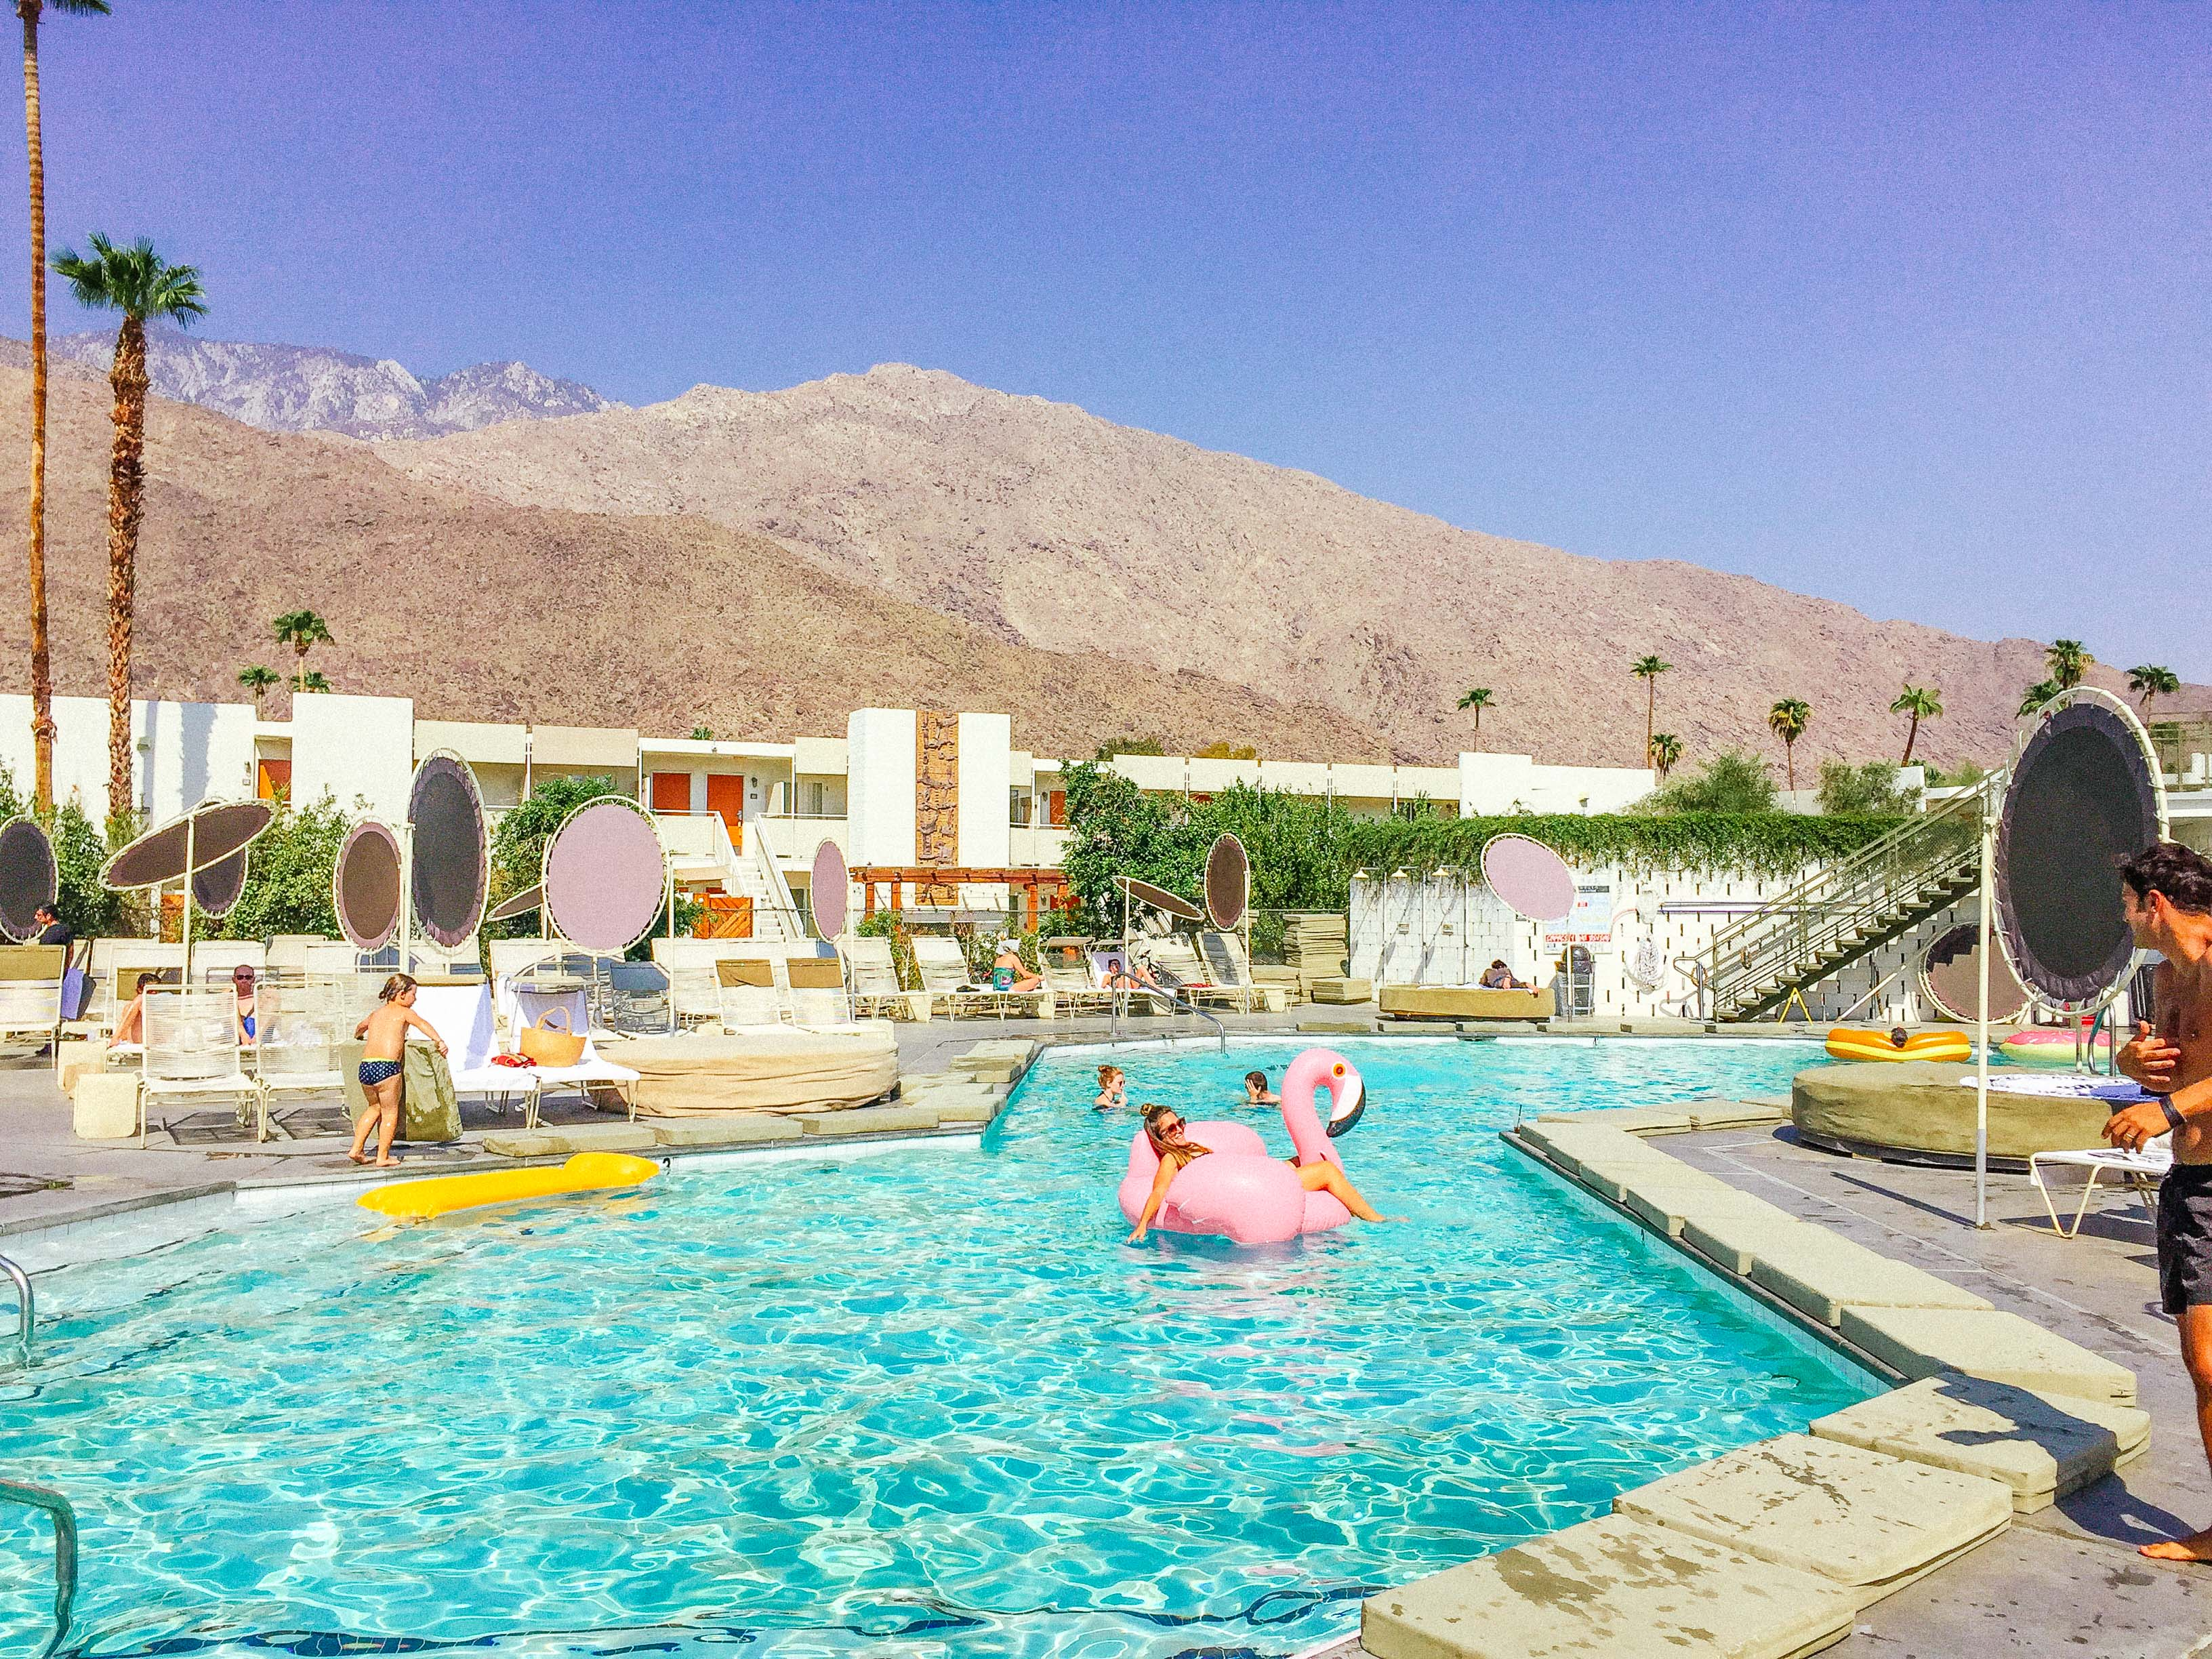 Palm springs travel guide 2016 a life well consumed 100 for Travel to palm springs